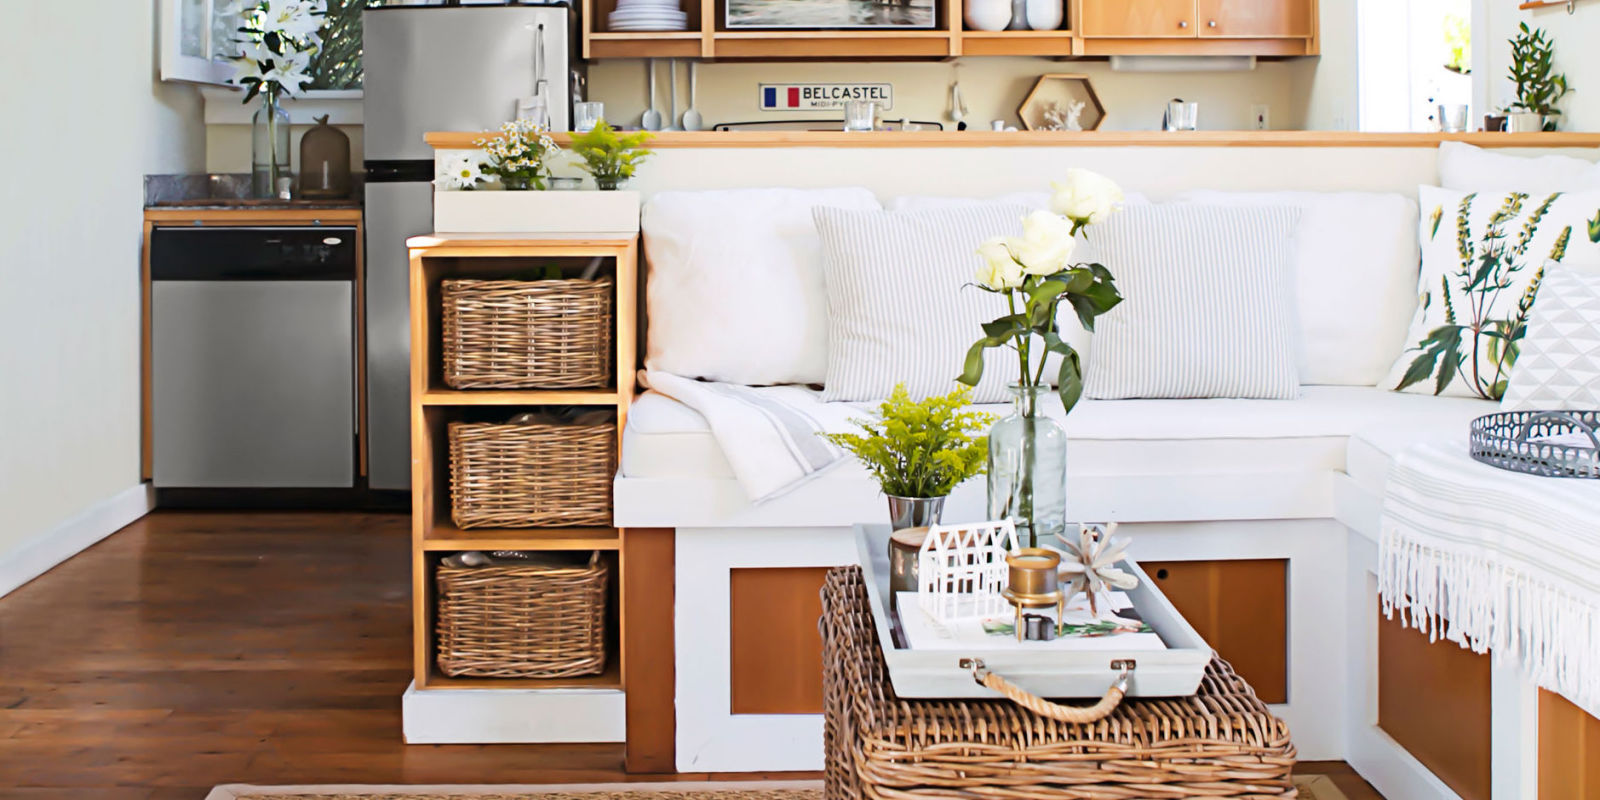 House tour 362 square foot home small space design for Home design ideas for small homes